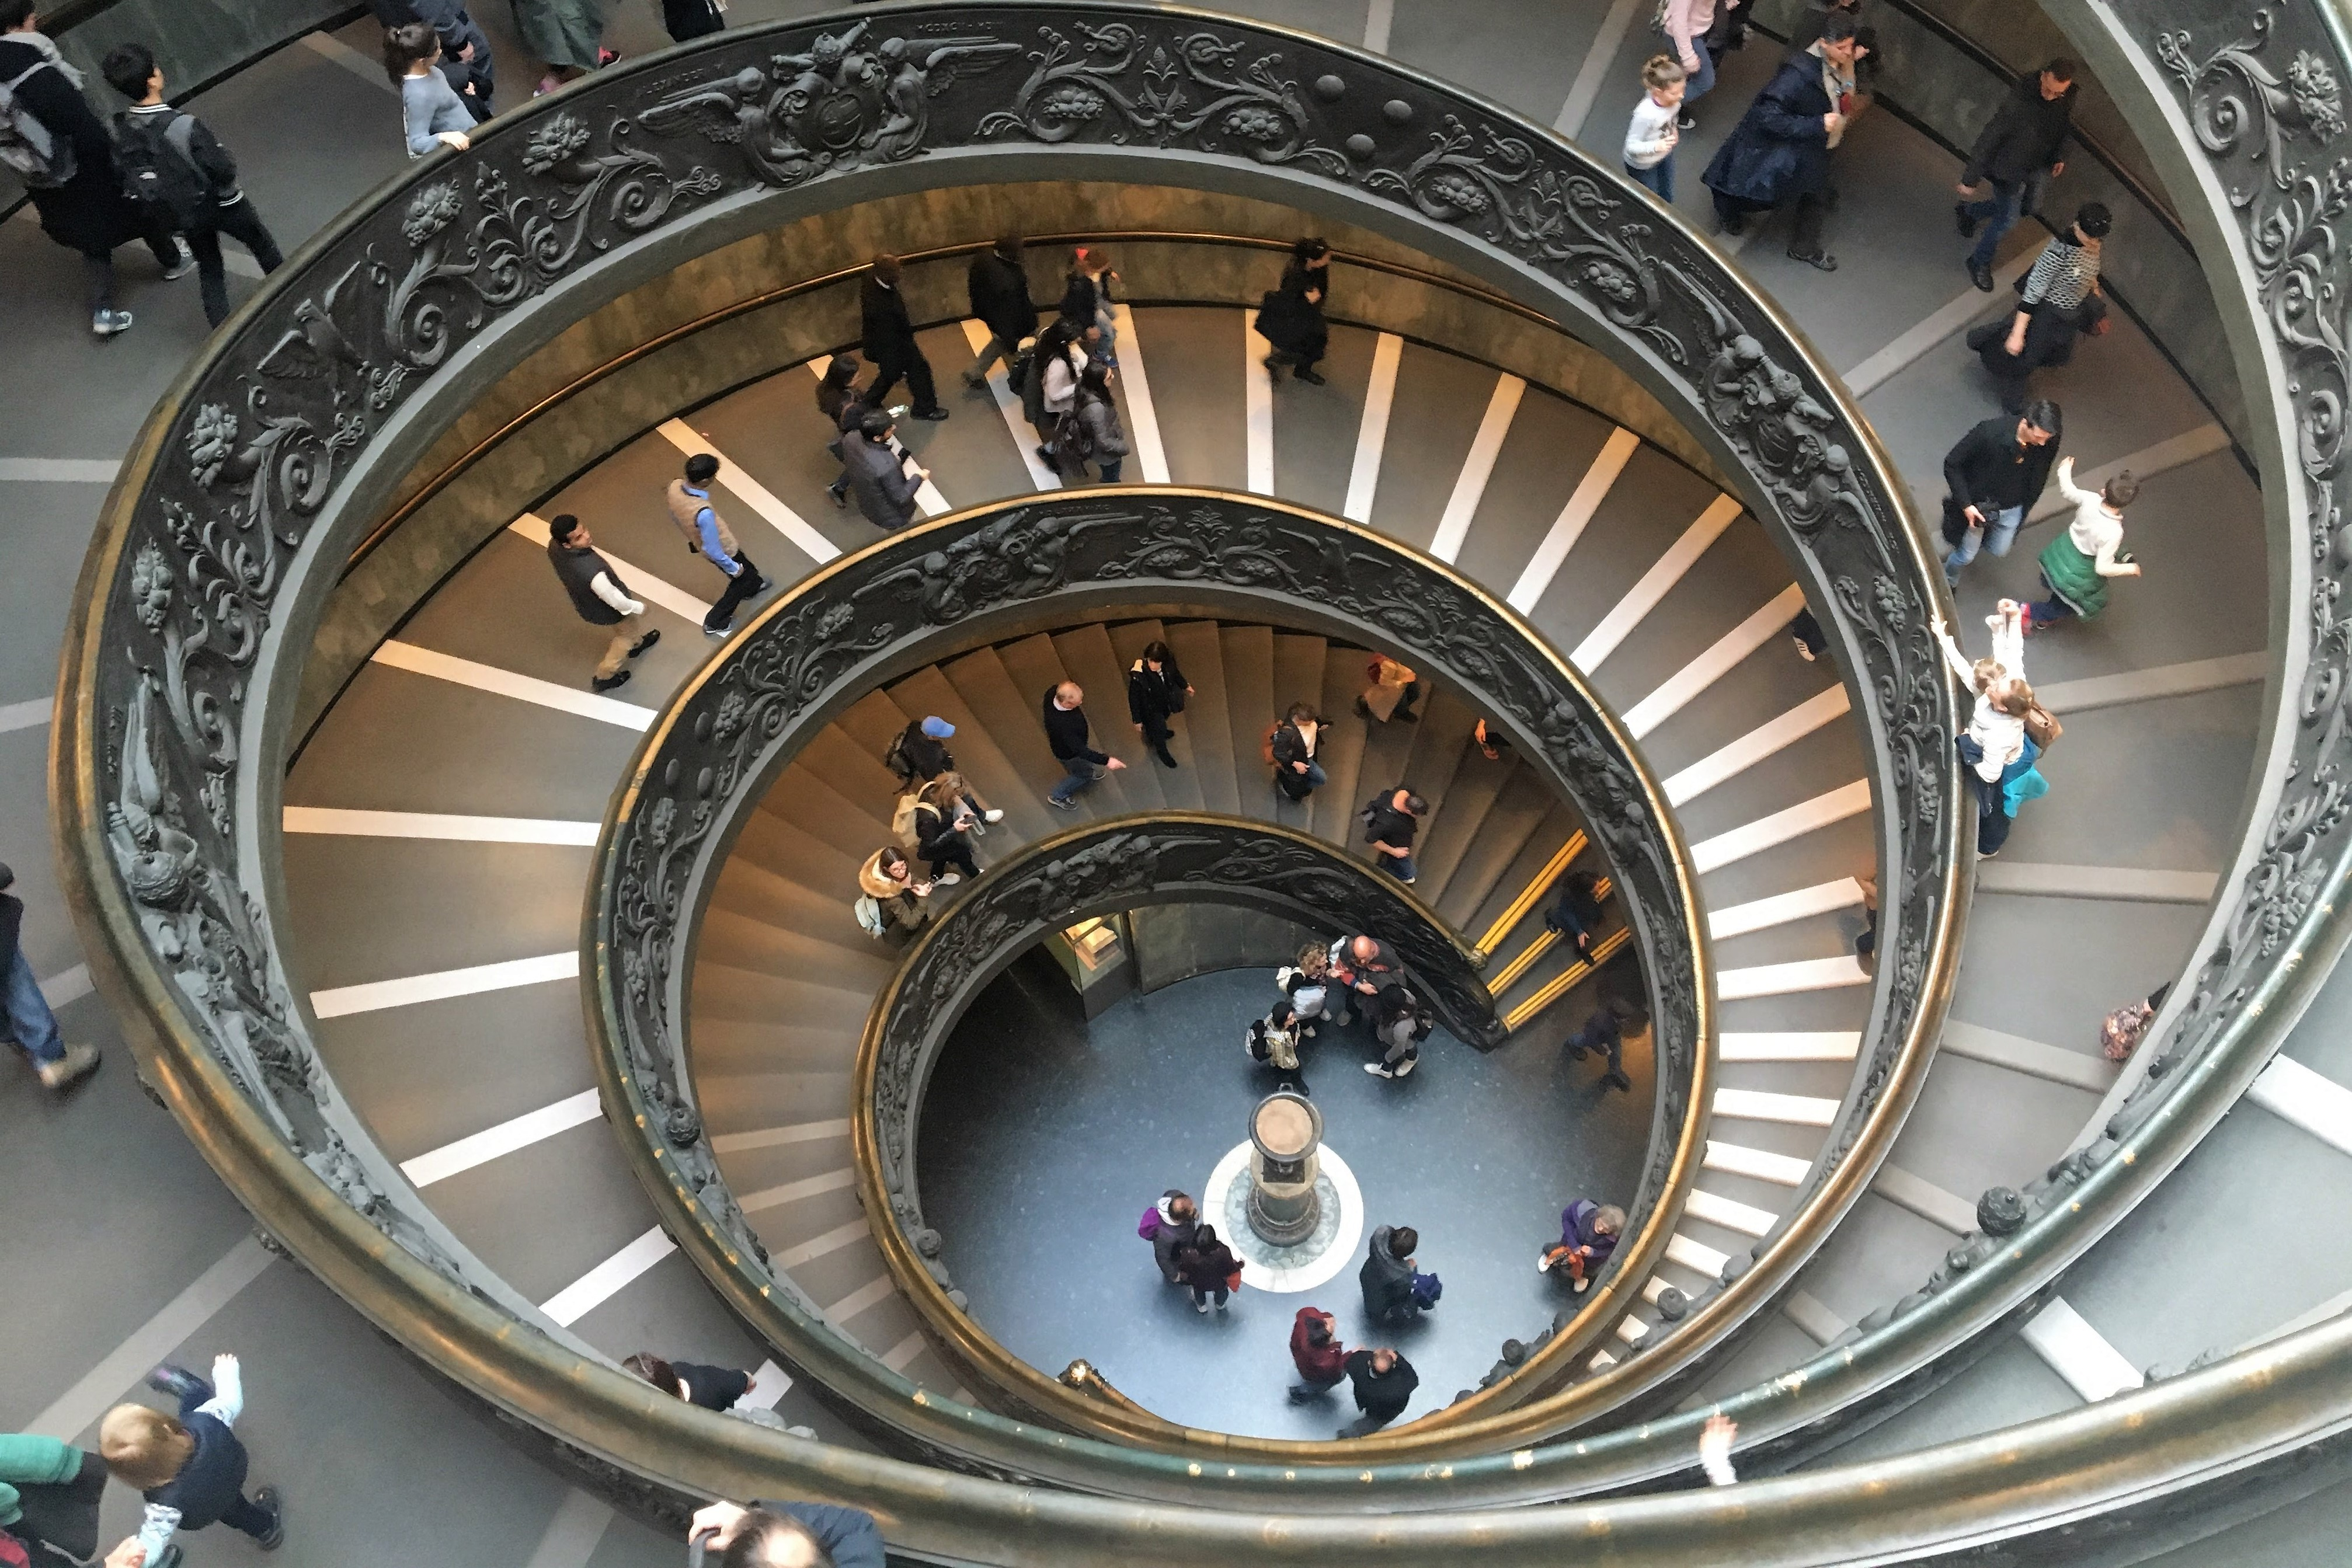 Are The Best Vatican Tours Guided Or Not Guided?